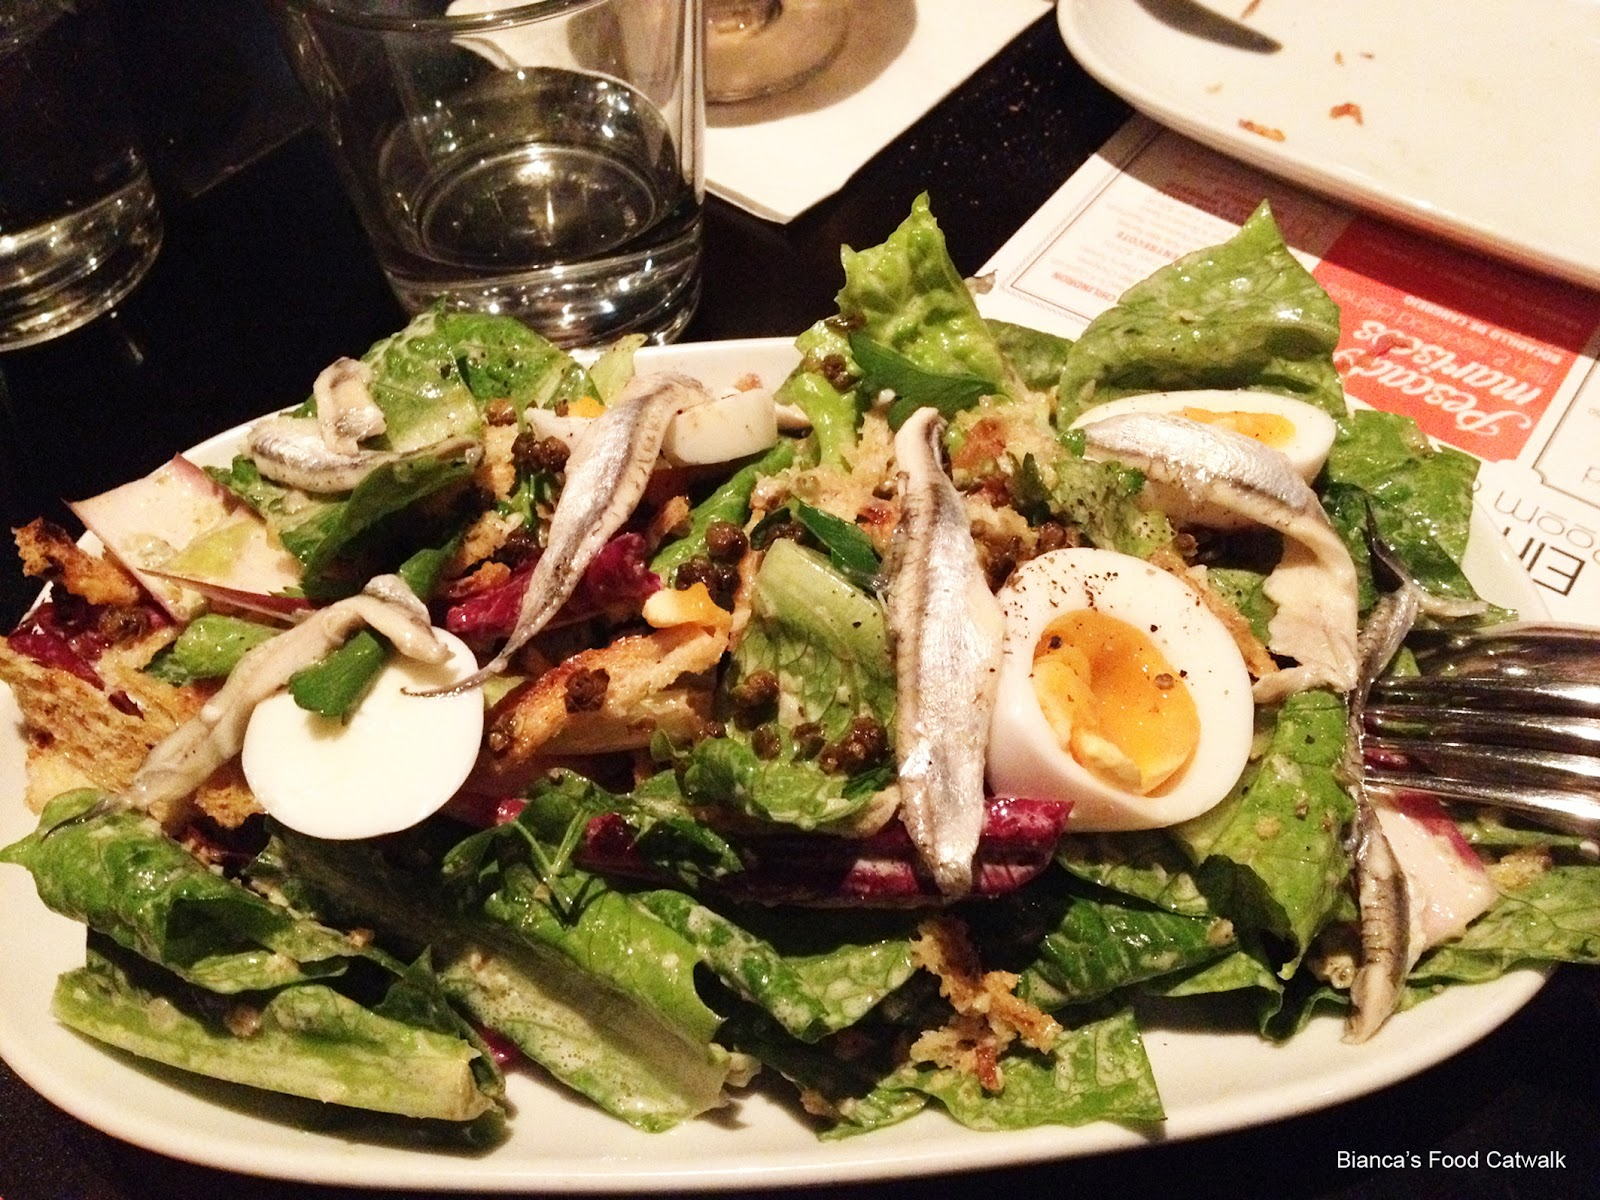 This Is Another Salad We Had And For The Life Of Me I Cant Remember What It Was Isnt On Menu Anymore